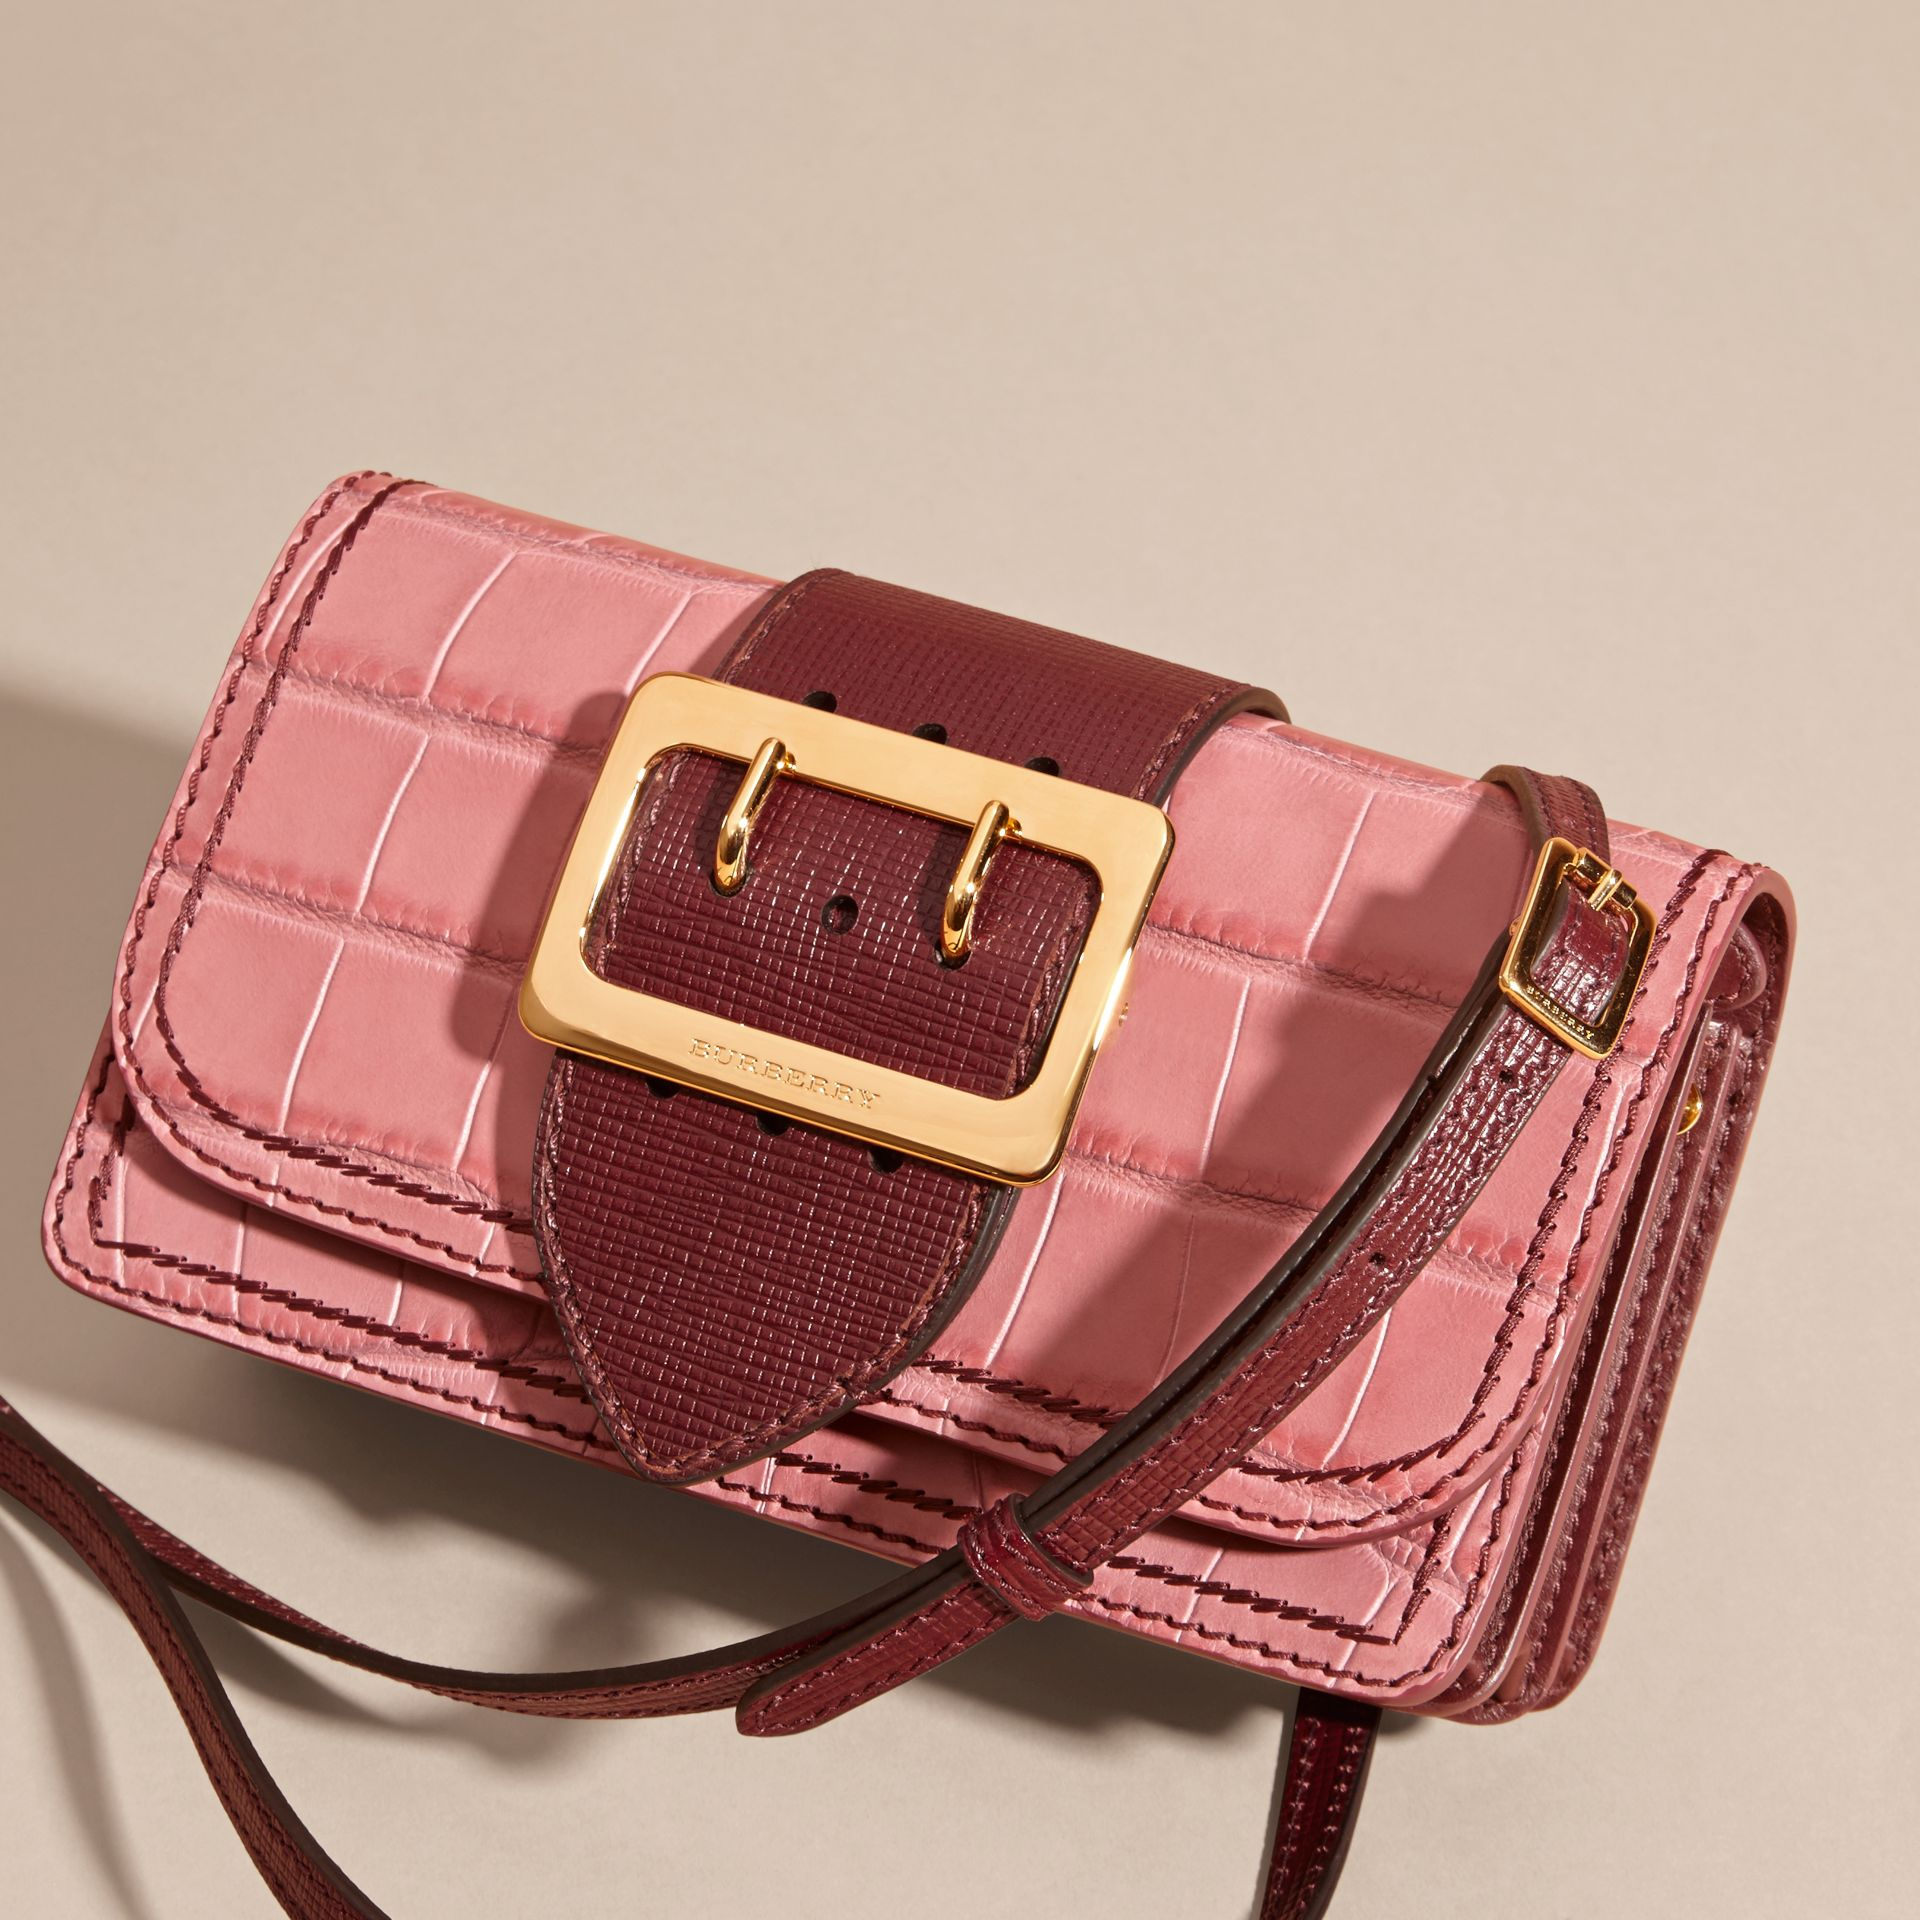 The Small Buckle Bag in Alligator and Leather in Dusky Pink/ Burgundy - Women | Burberry United States - gallery image 8